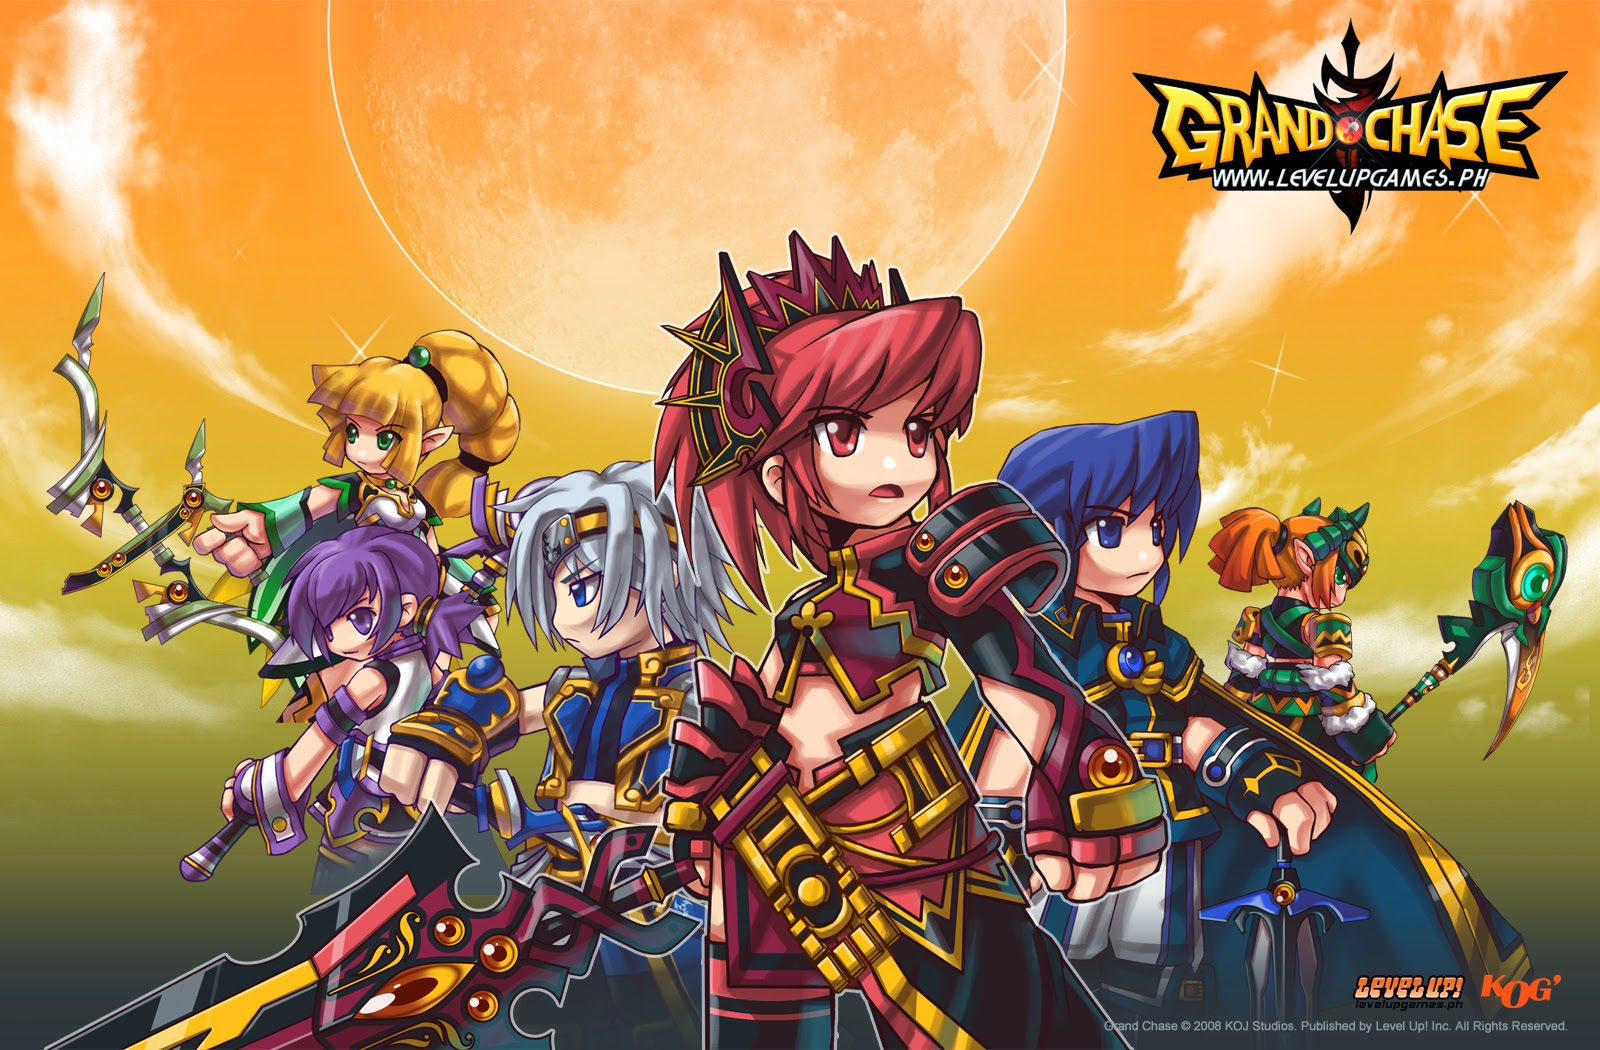 Grand Chase Online